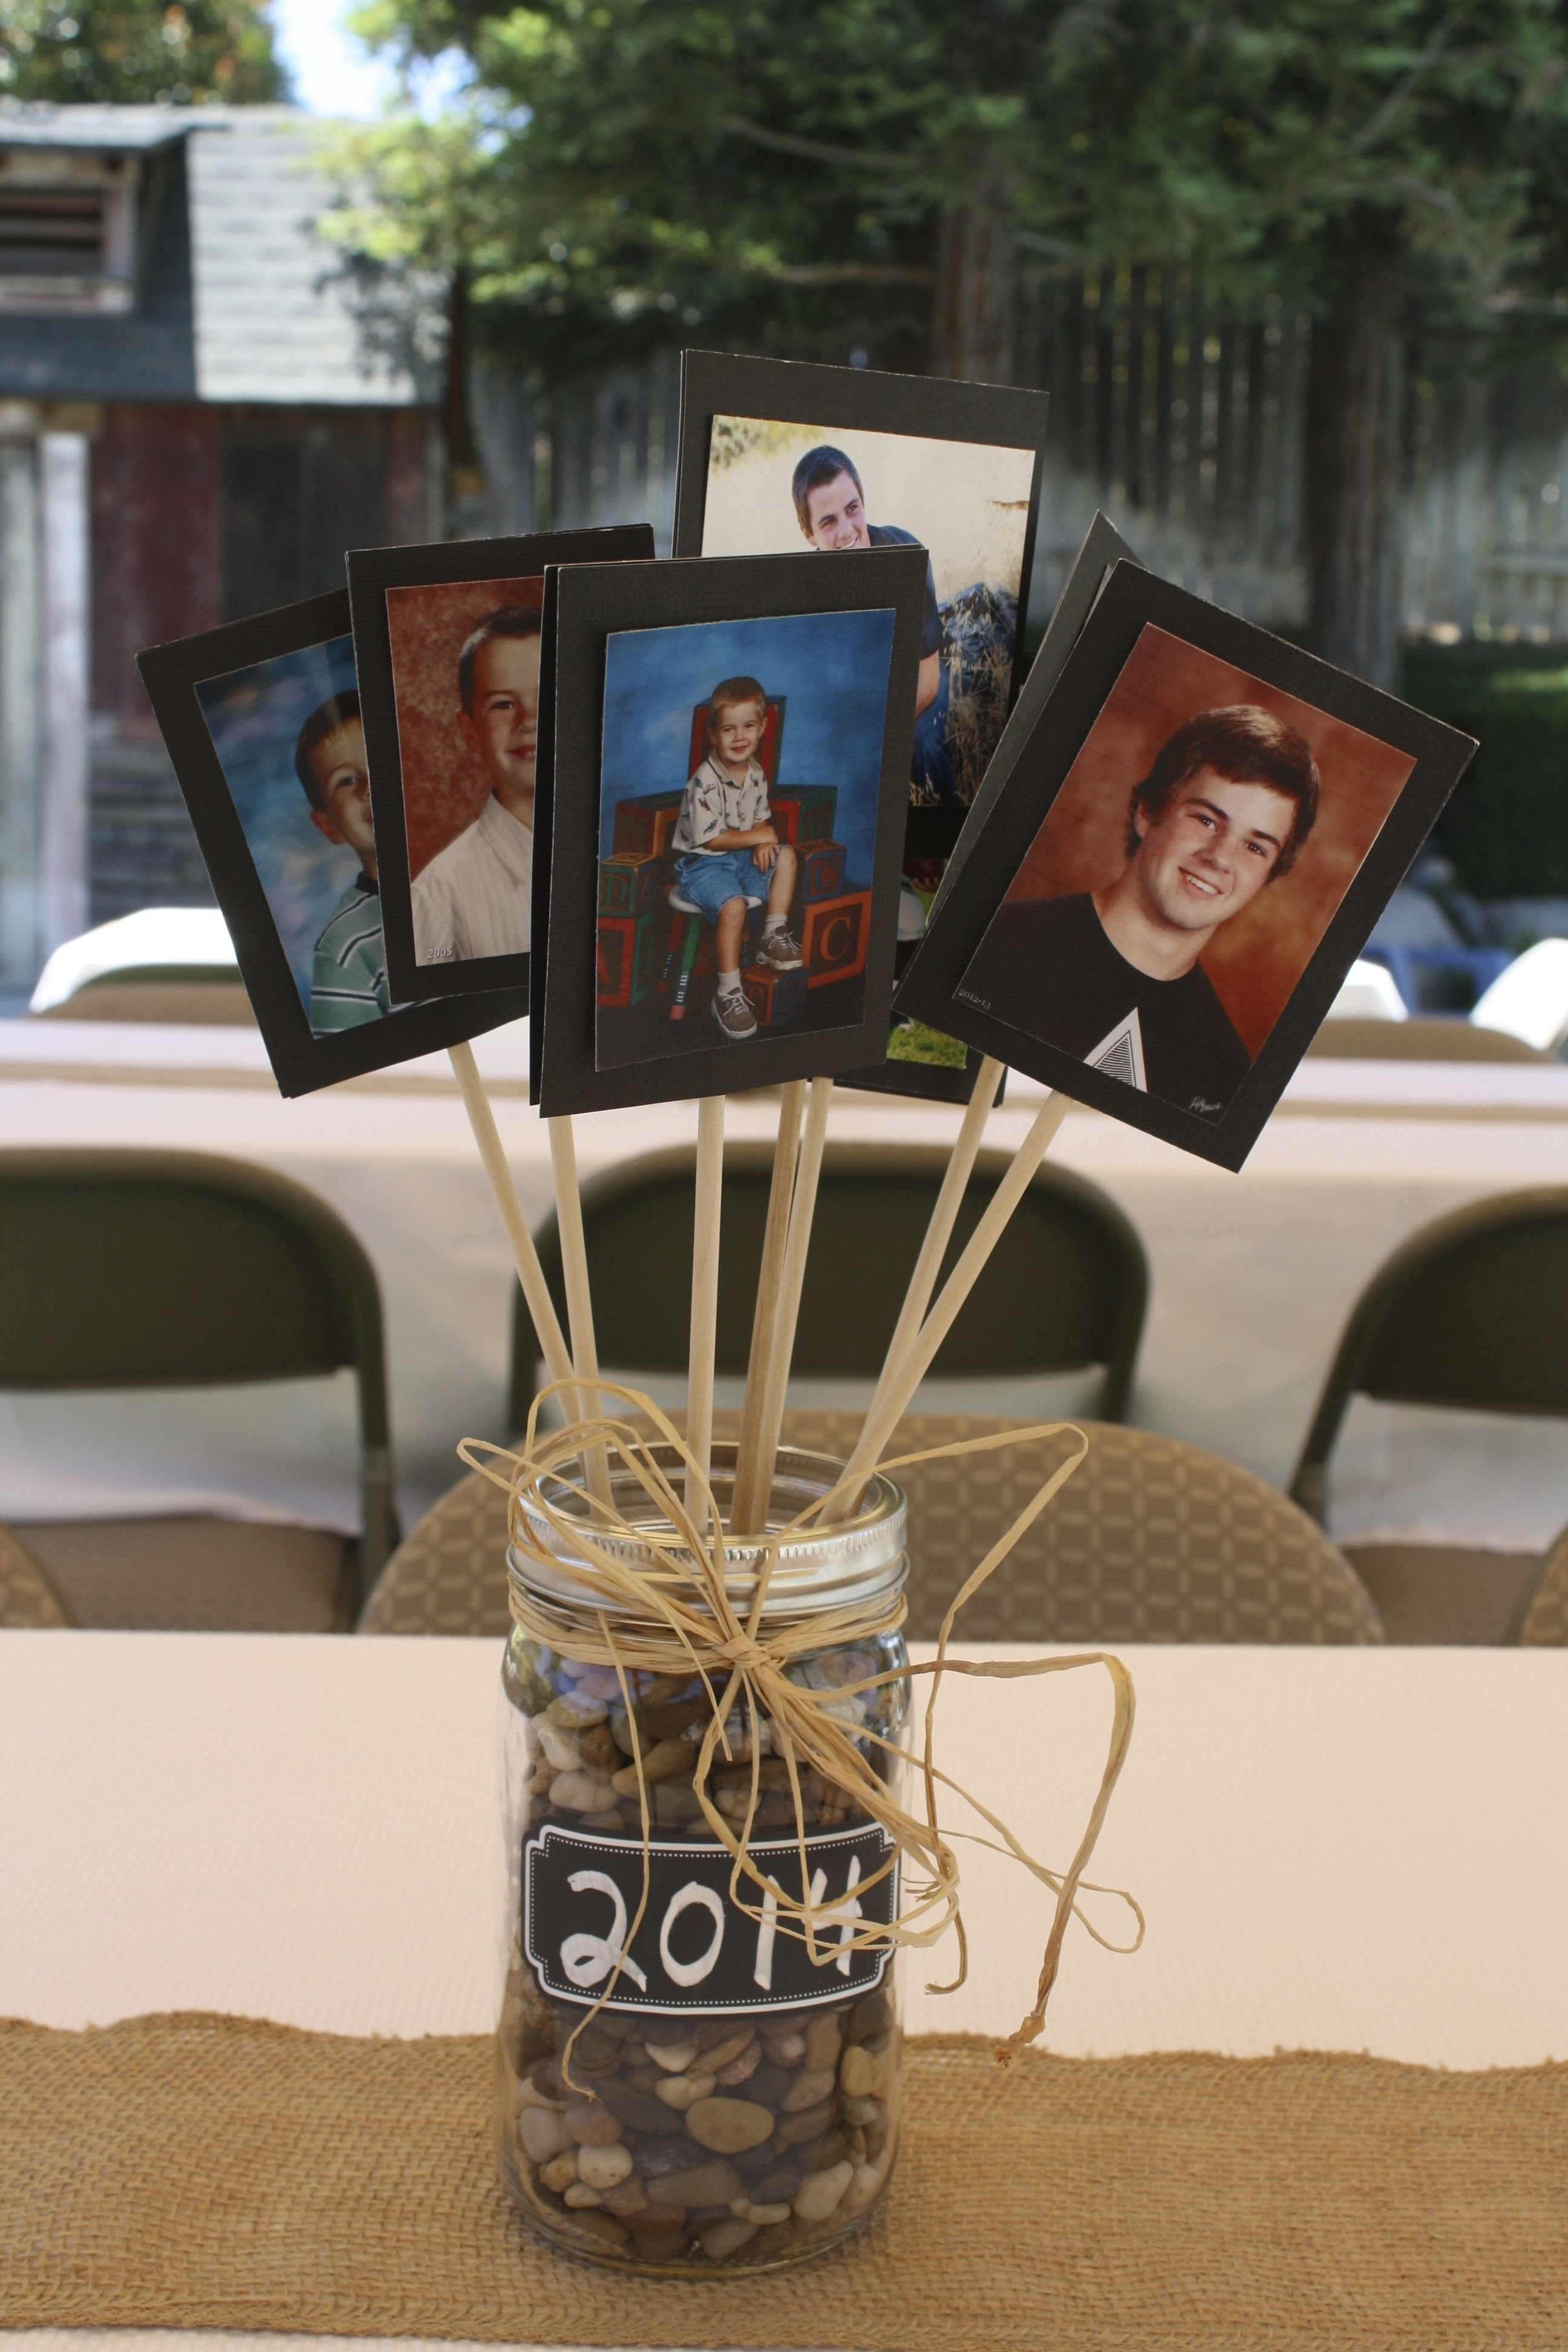 10 Awesome Graduation Party Ideas For Guys centerpiece for tables at a graduation party good for guysno 1 2021